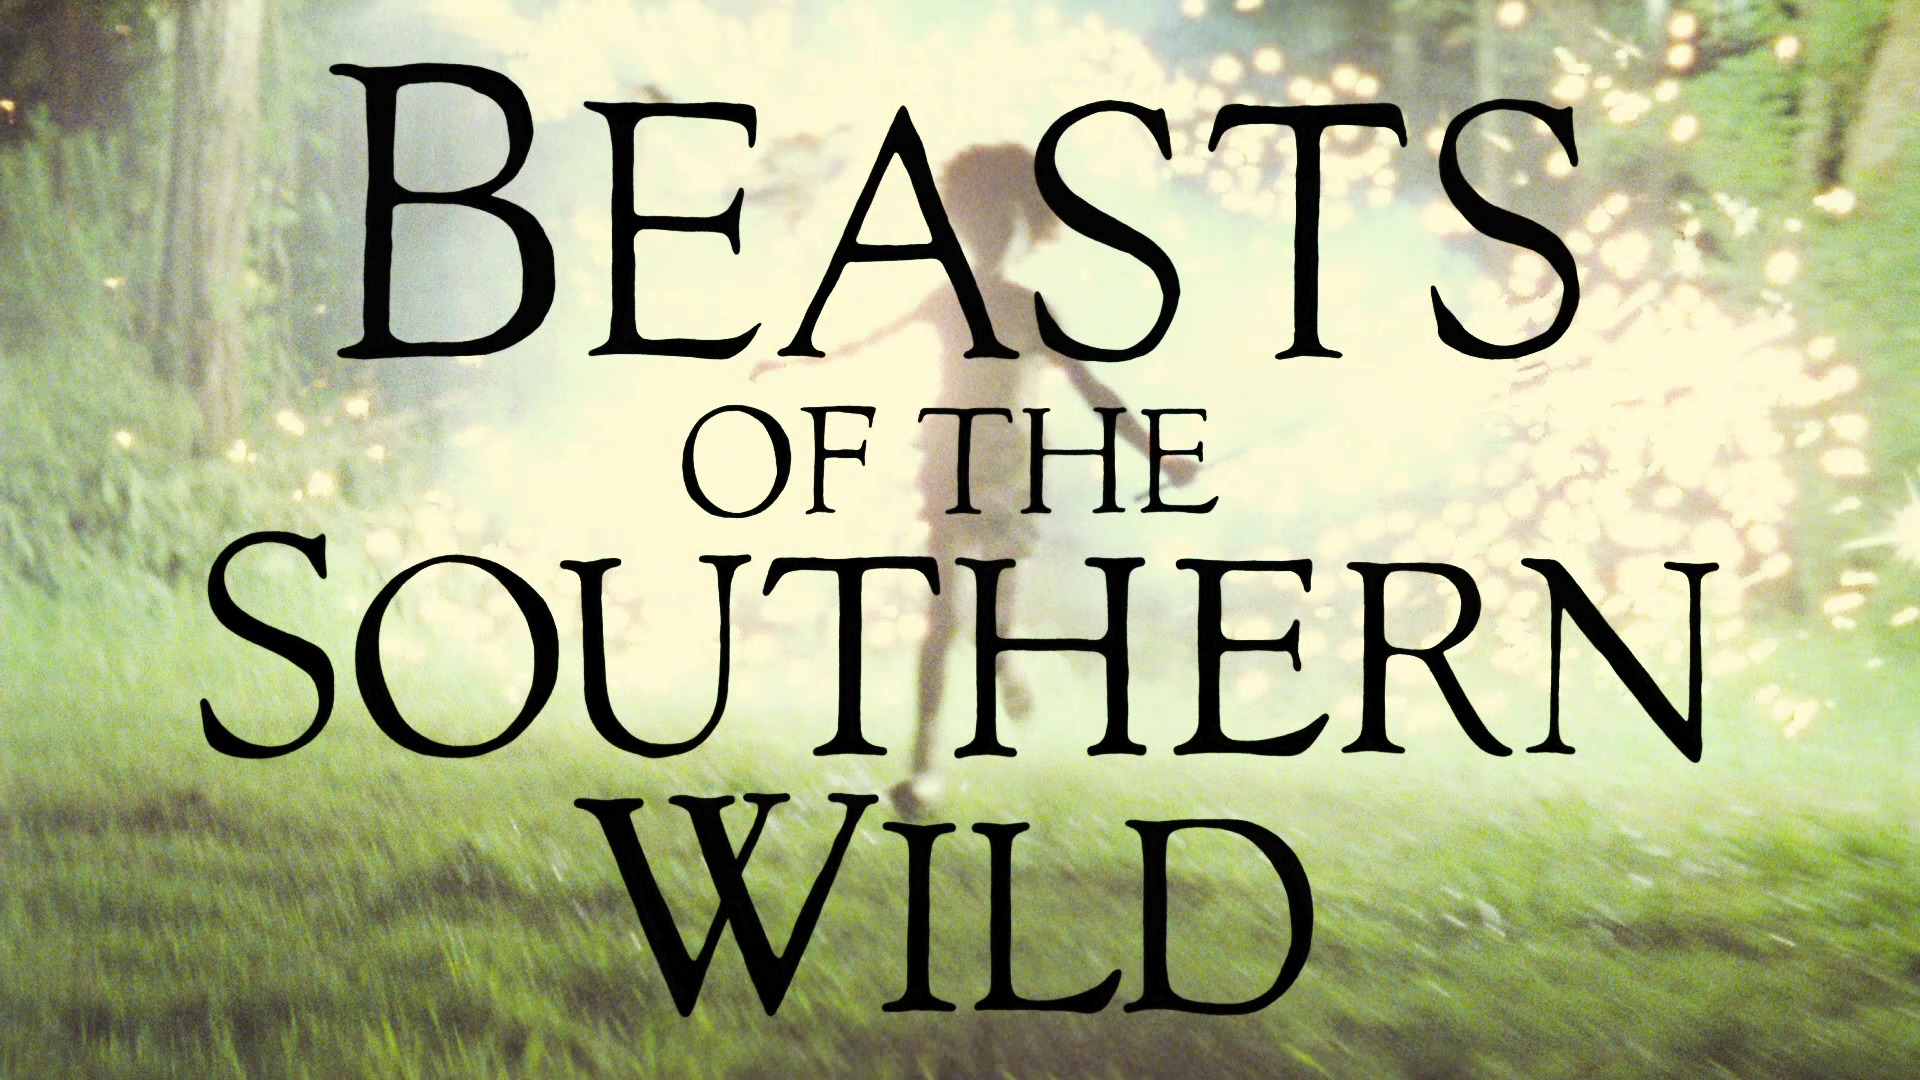 beasts of the southern wild language Beasts of the southern wild is a 2012 american drama film co-written, co-scored, and directed by benh zeitlinit was adapted by zeitlin and lucy alibar from alibar's one-act play juicy and.